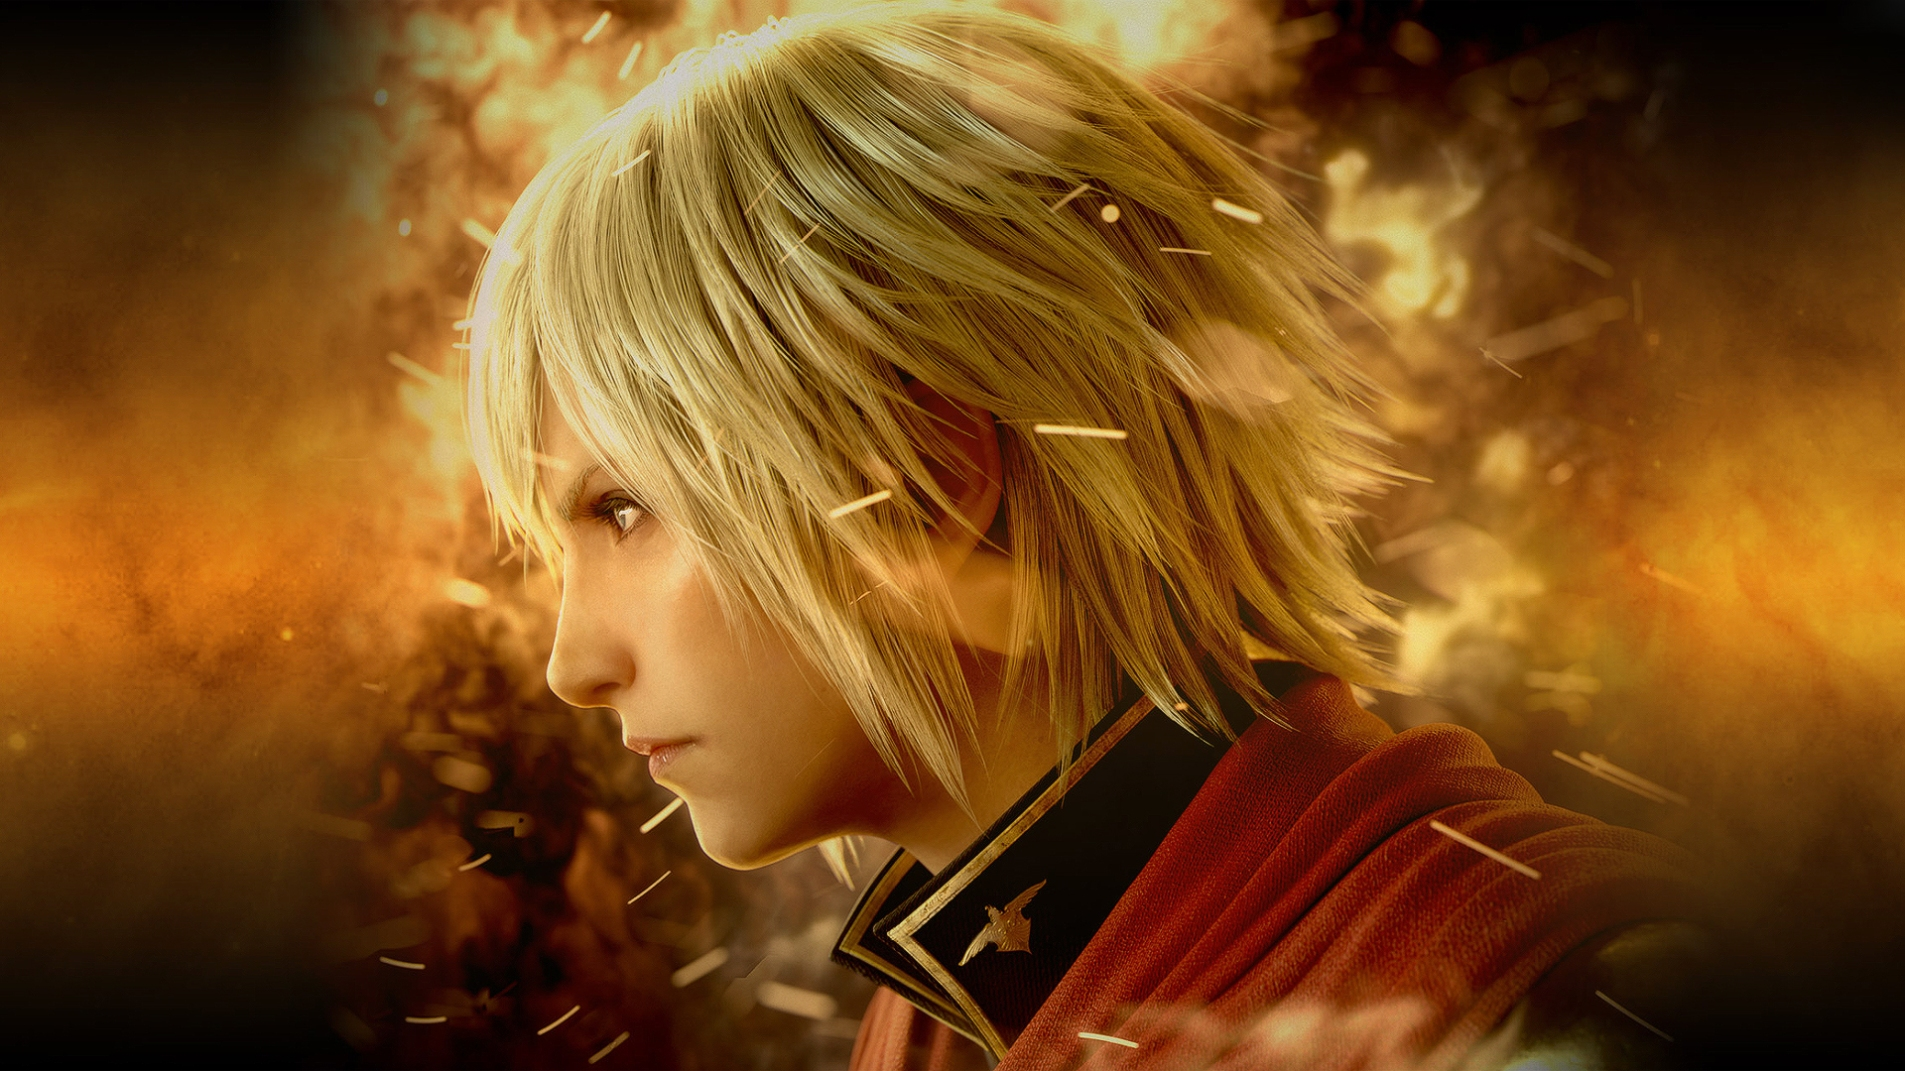 finalfantasytype0hdwallpaper